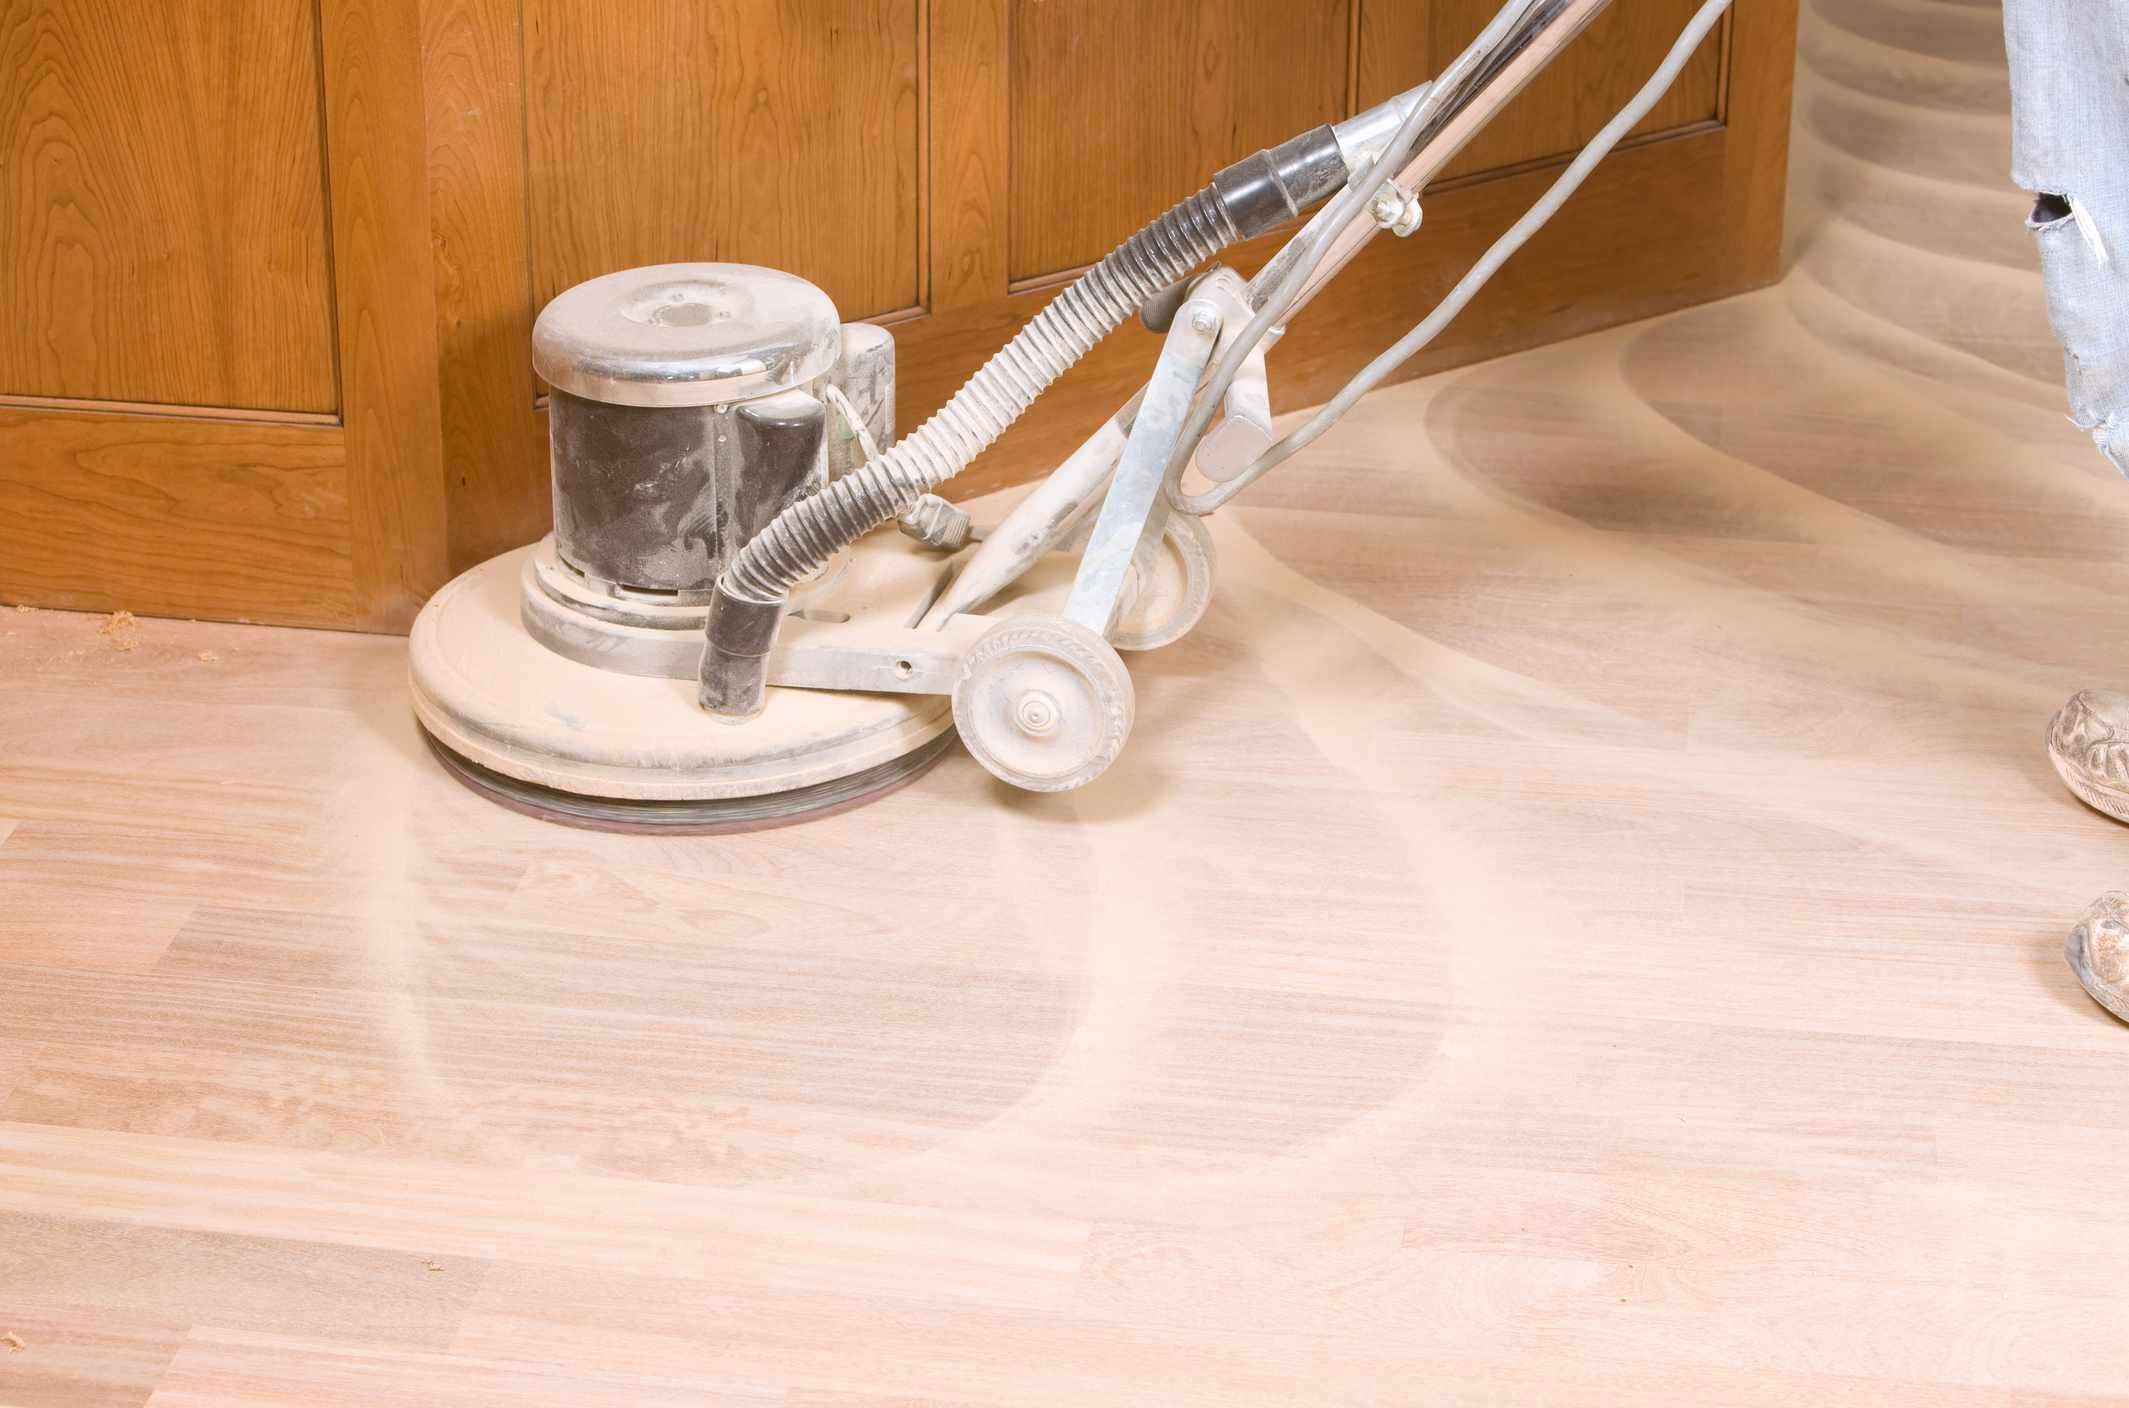 cost to re sand hardwood floors of how to sand hardwood floors with gettyimages 183768766 587b01a45f9b584db3a5315f